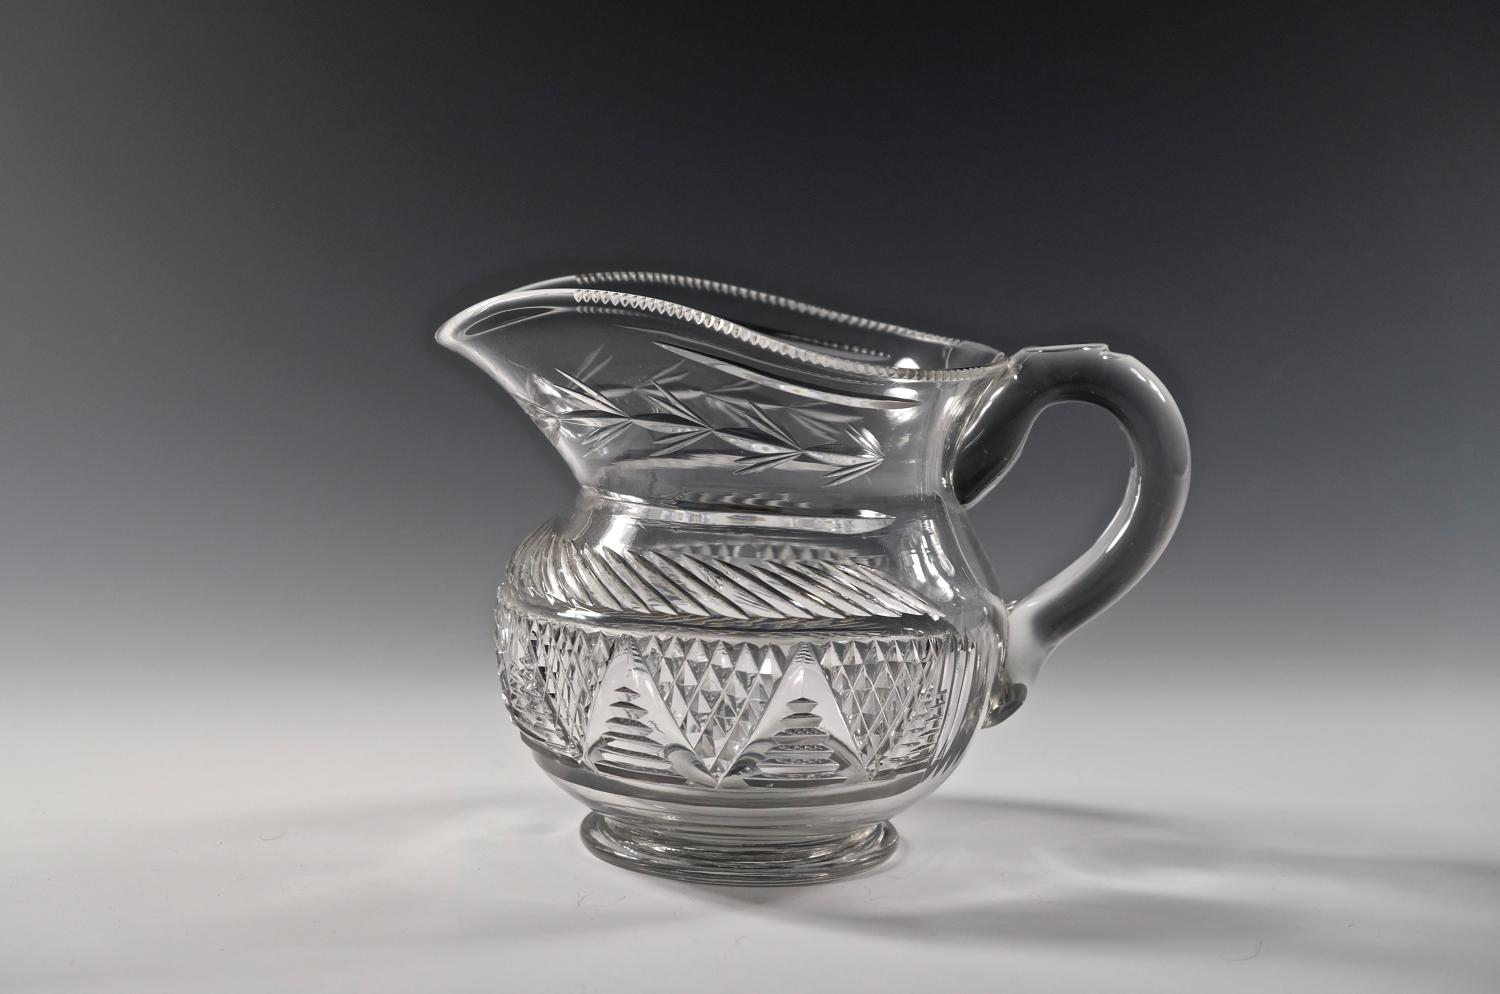 Cut glass water jug English C1830